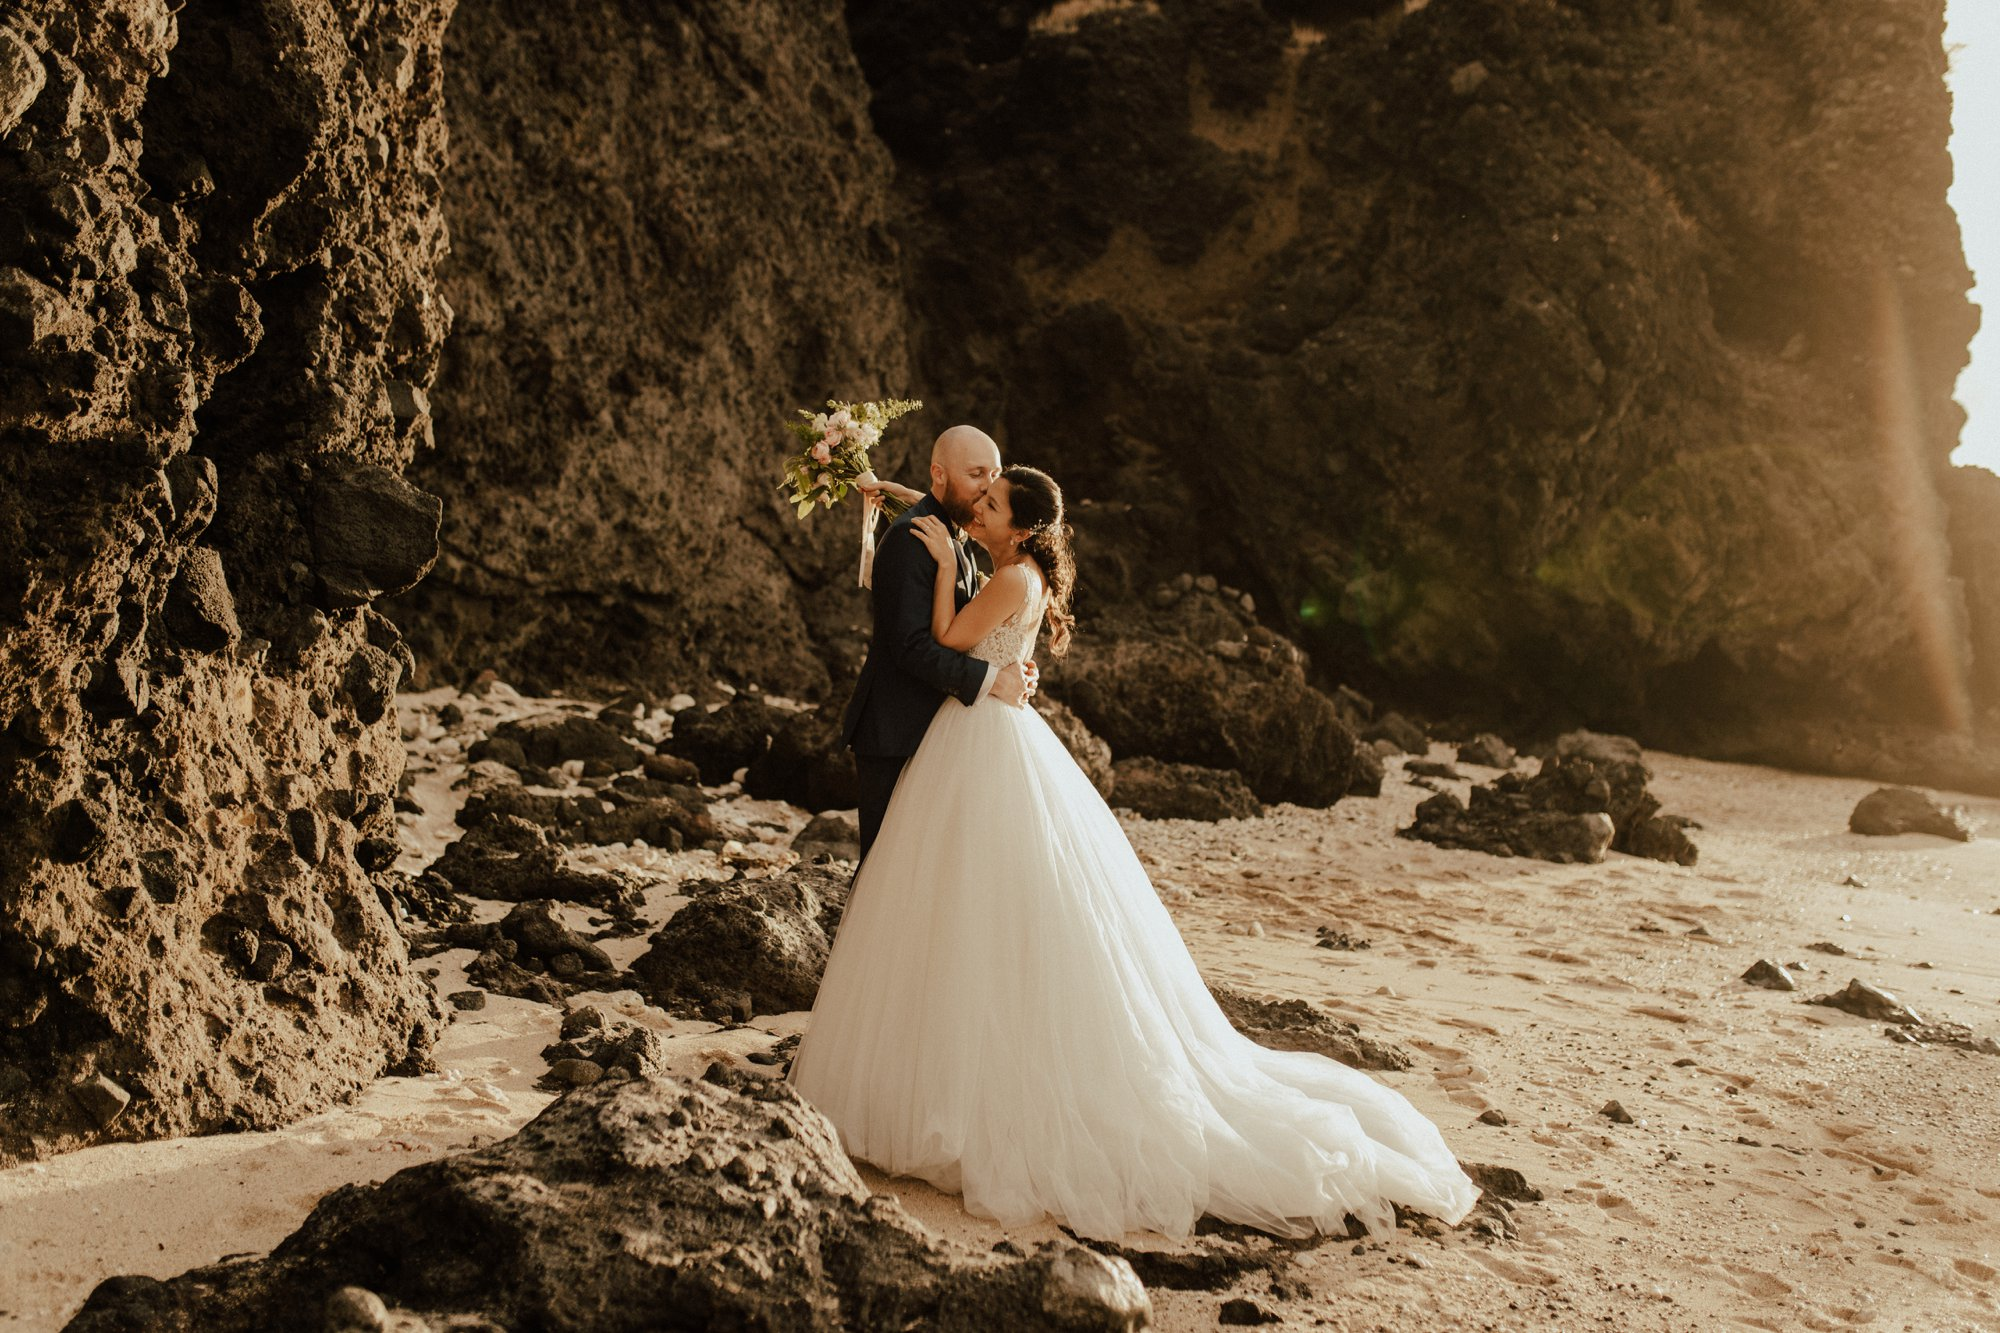 Summer wedding in Reunion Island